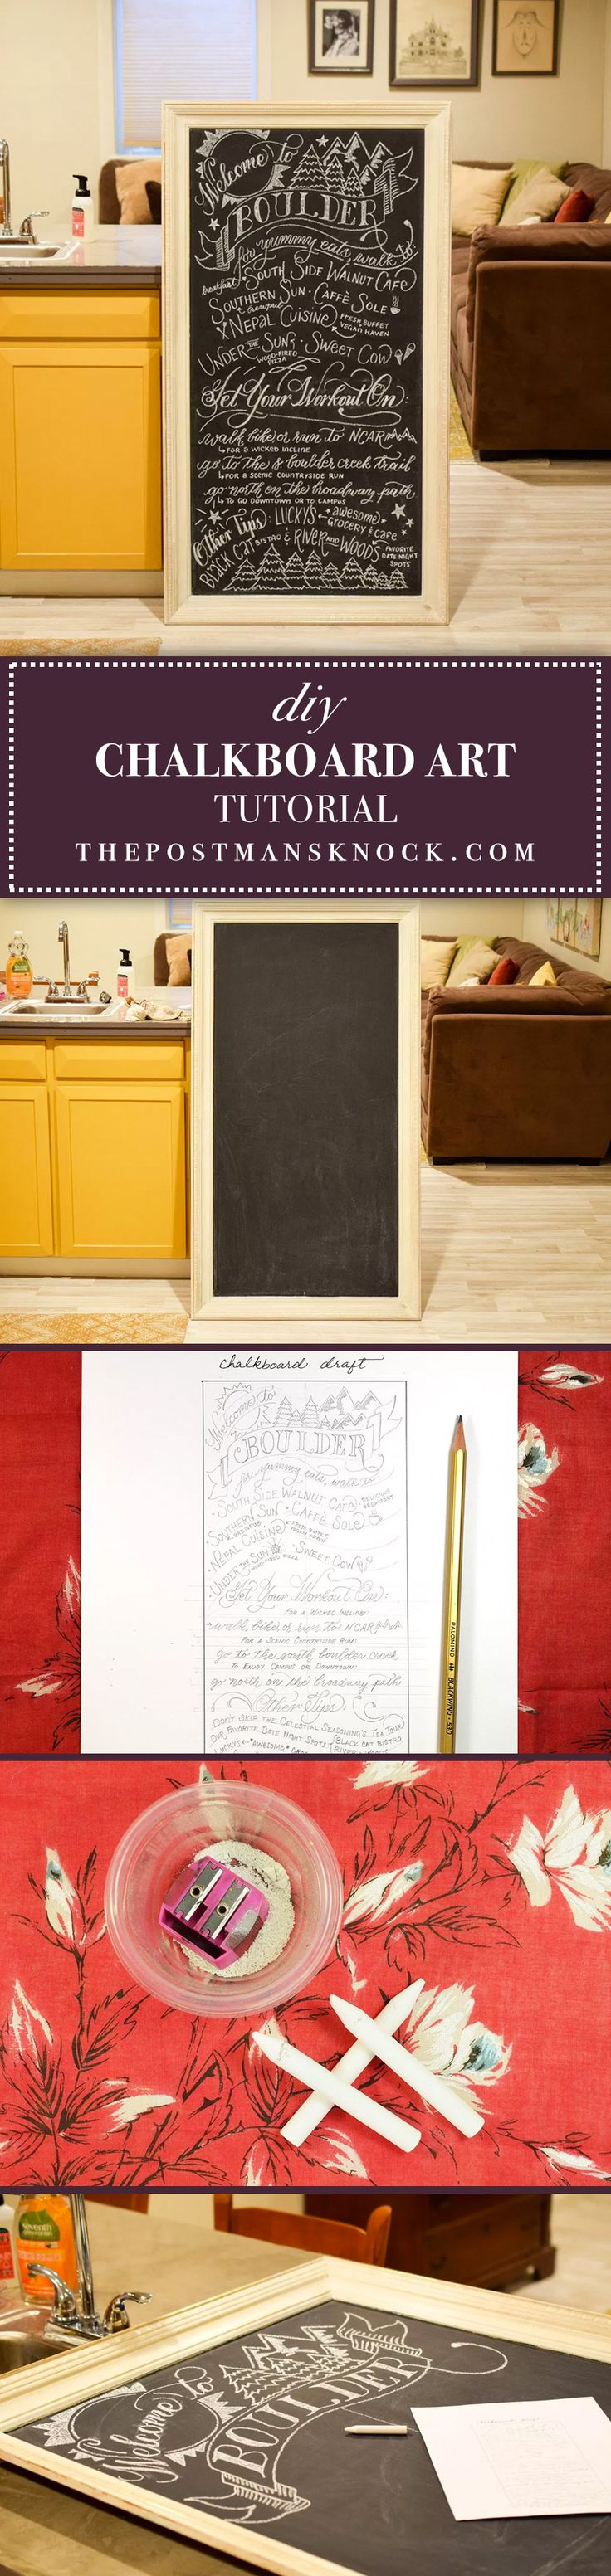 DIY Chalkboard Art Tutorial